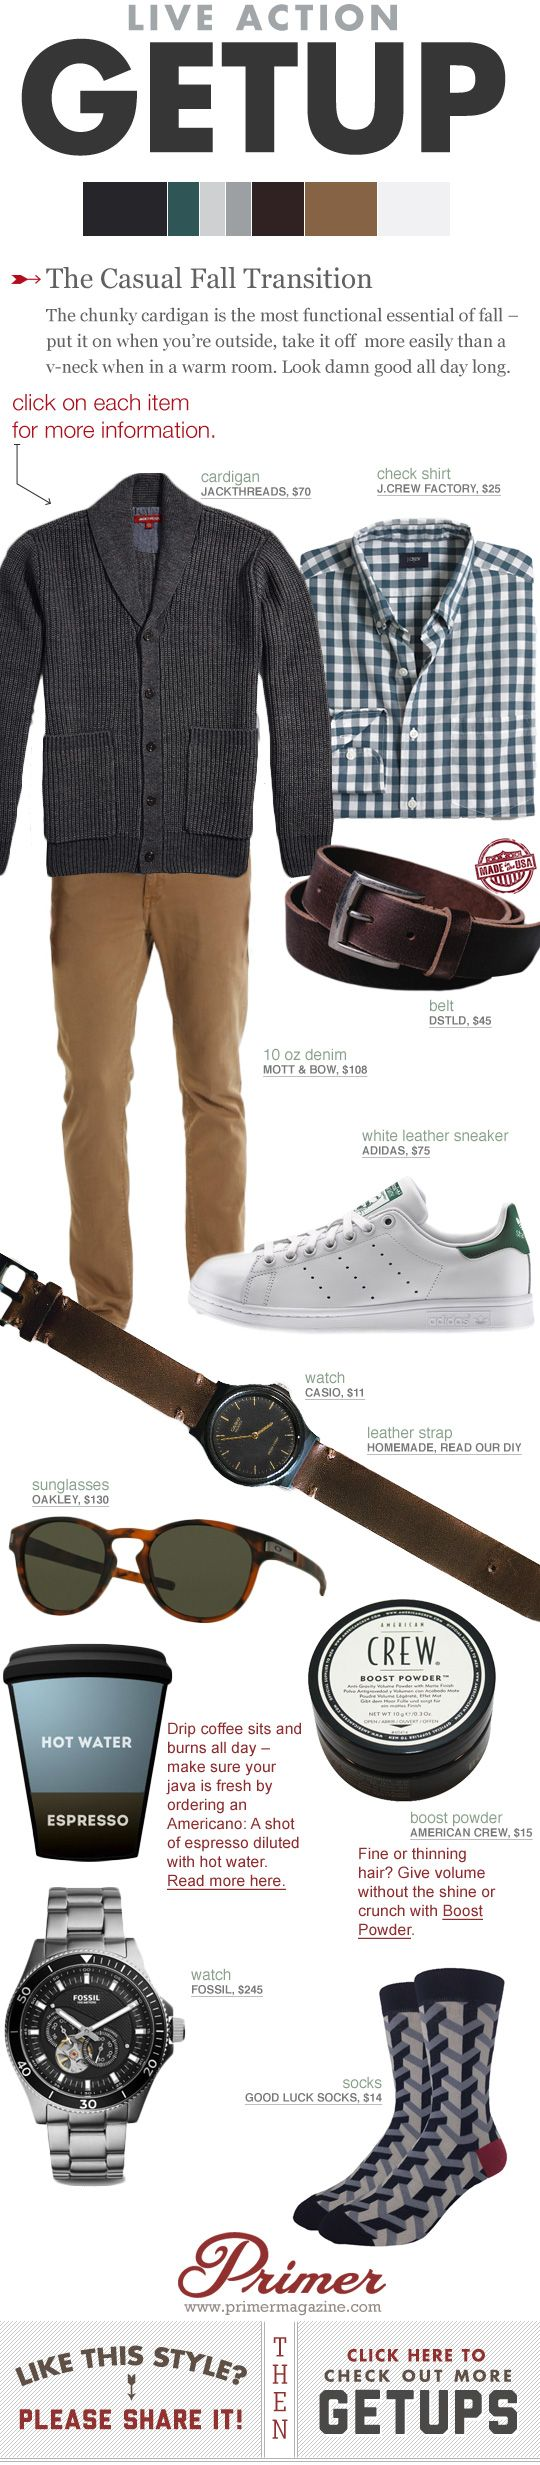 Live Action Getup: The Casual Fall Transition   Primer